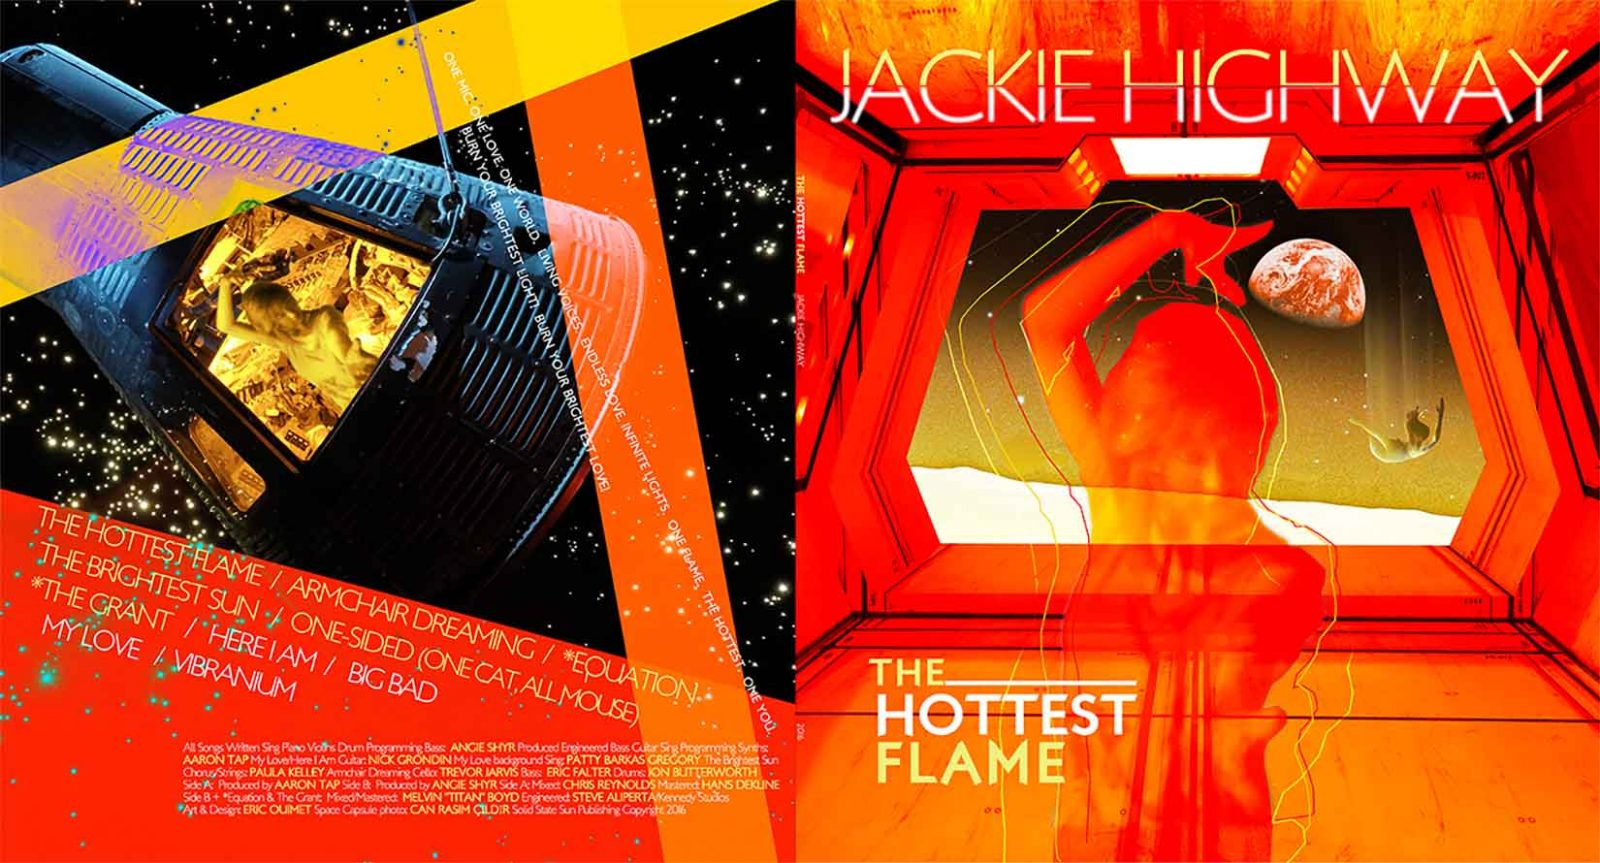 Official Website of JACKIE HIGHWAY